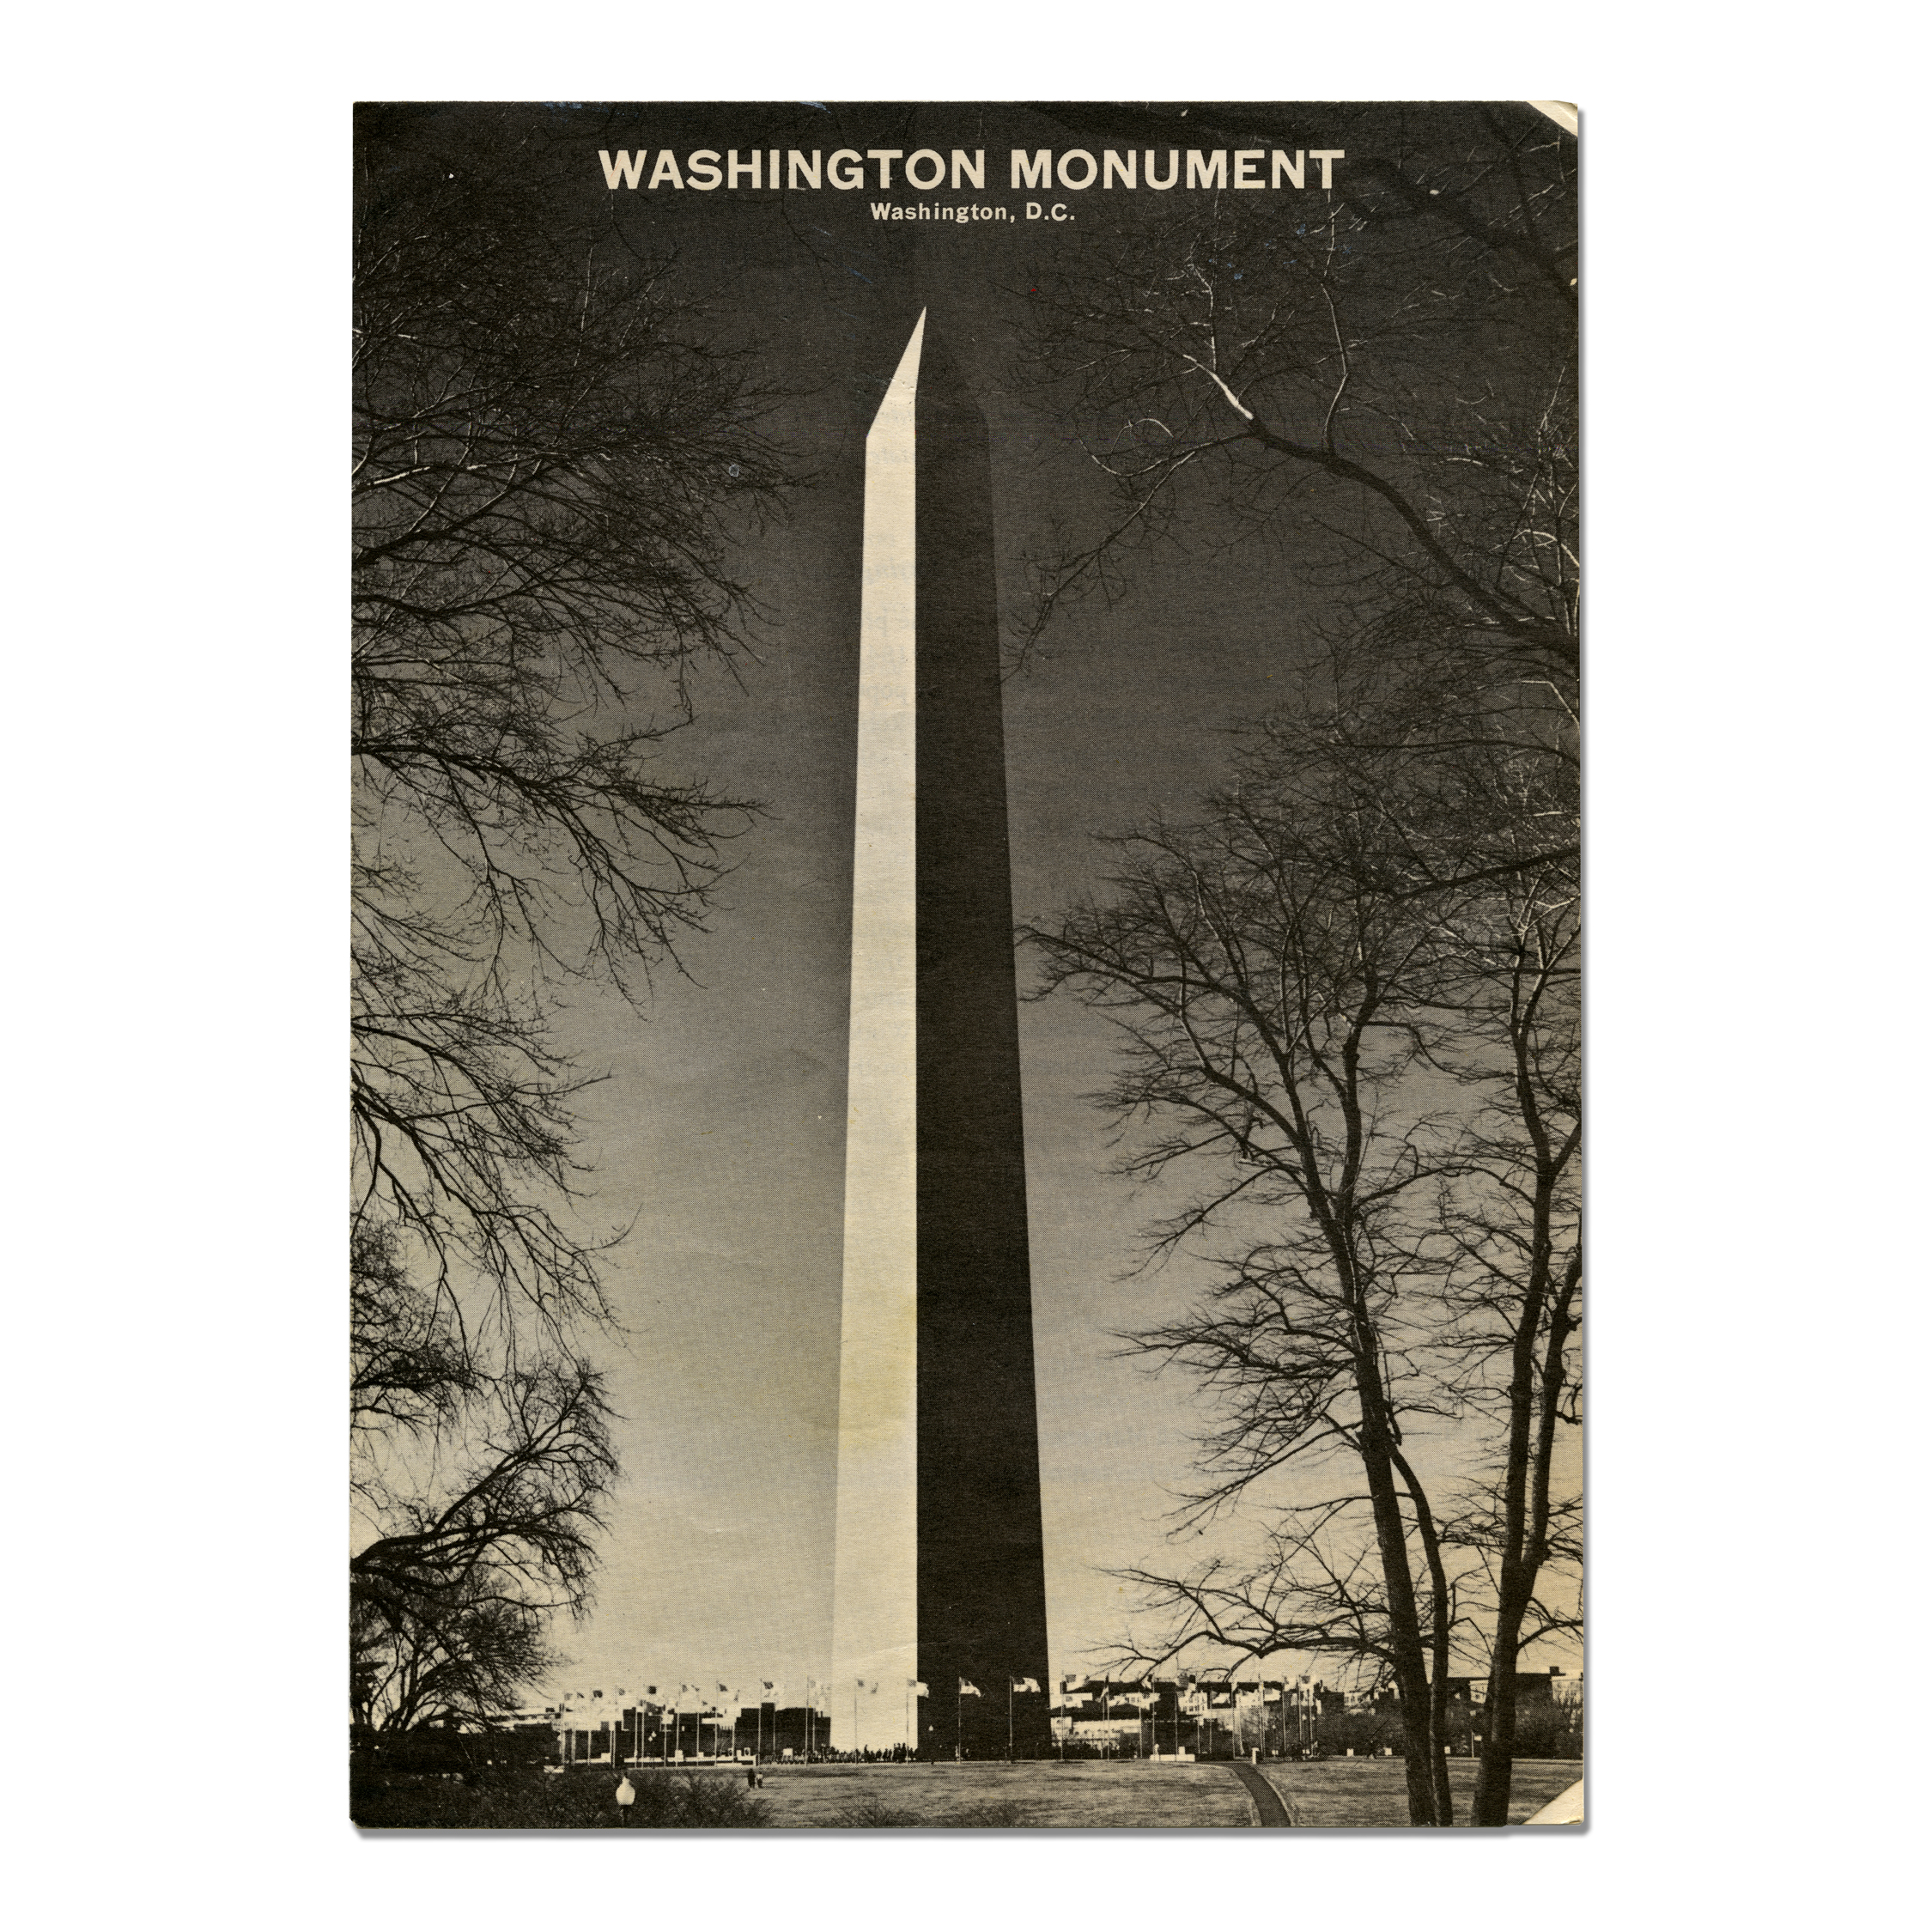 1964_washington_monument_brochure.jpg